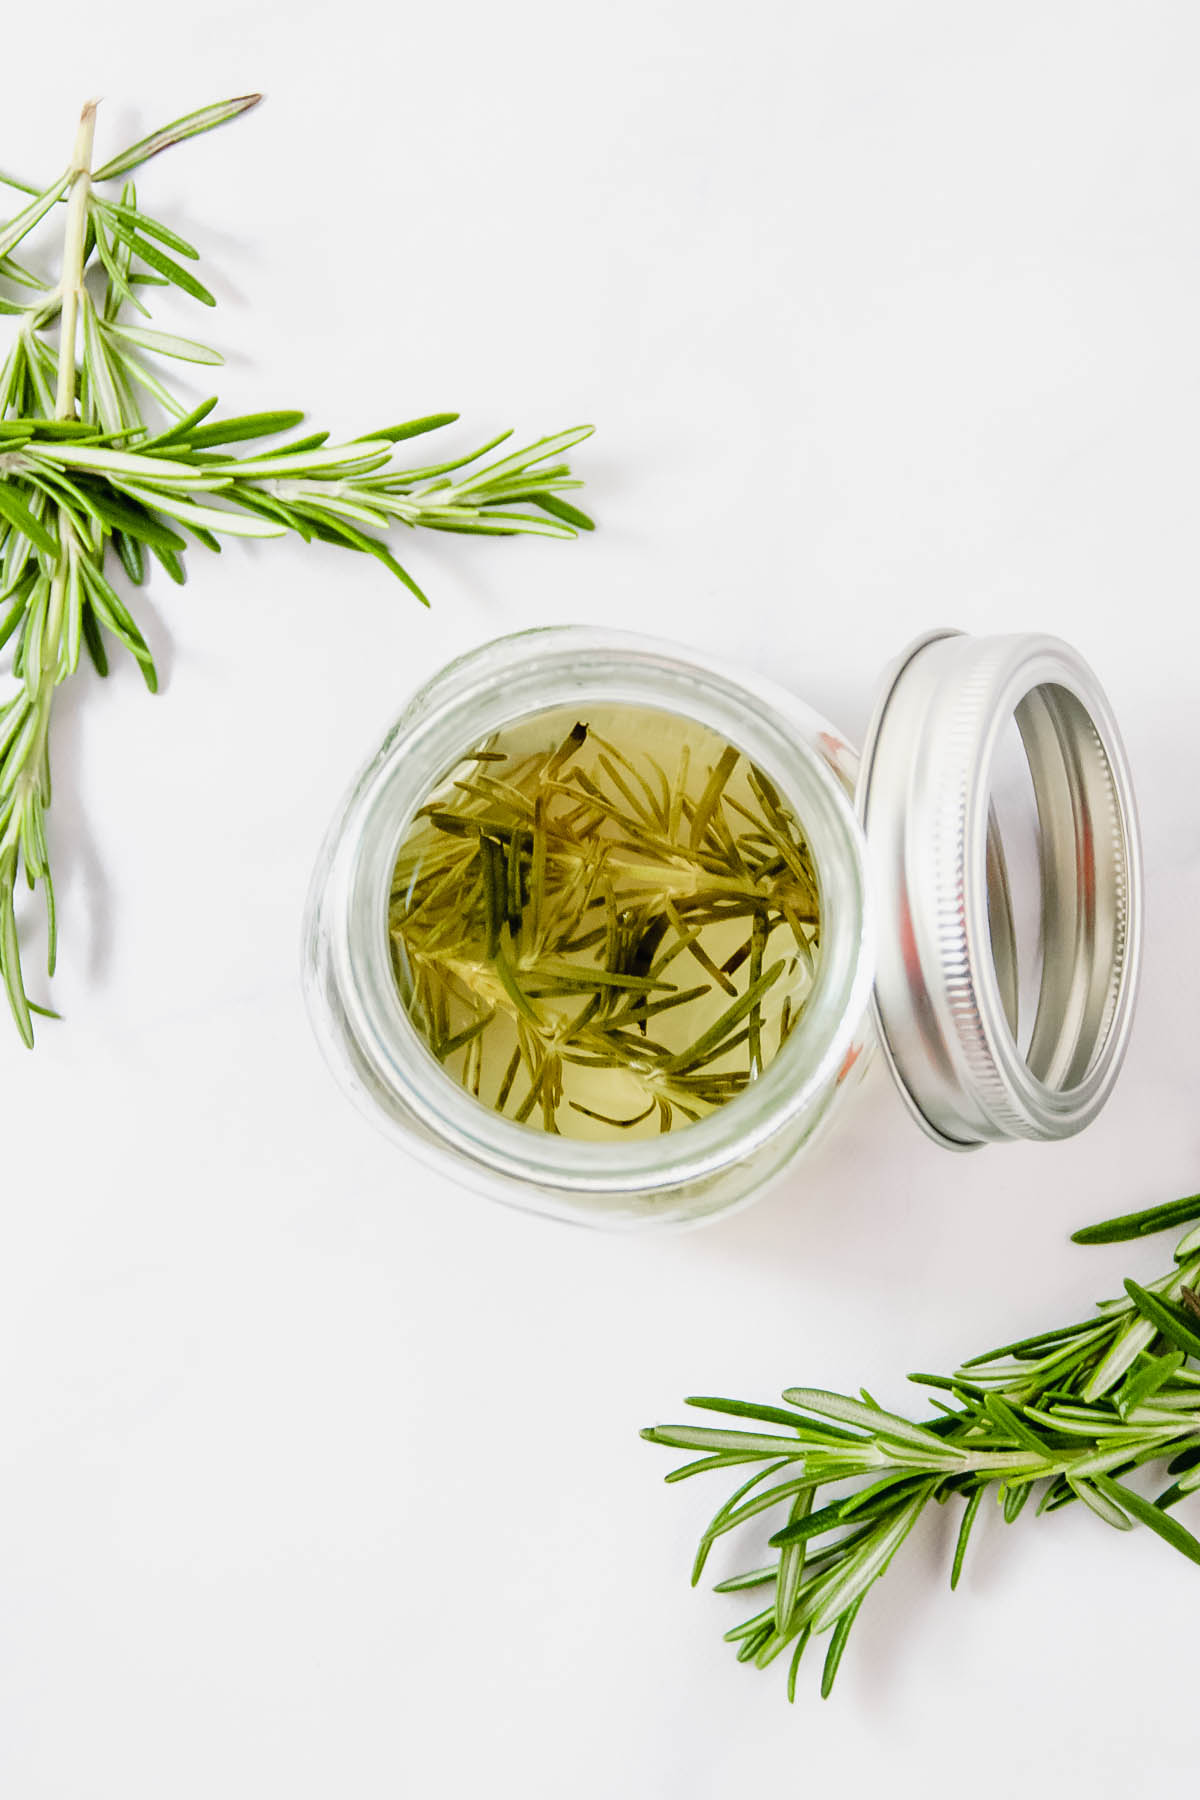 Rosemary infused simple syrup is an essential bar ingredient that turns a simple cocktail into something different and special! Perfect for holiday cocktails! - thebeaderchef.com #rosemary #cocktails #bar #simplesyrup #infused #christmas #holidays #mocktails